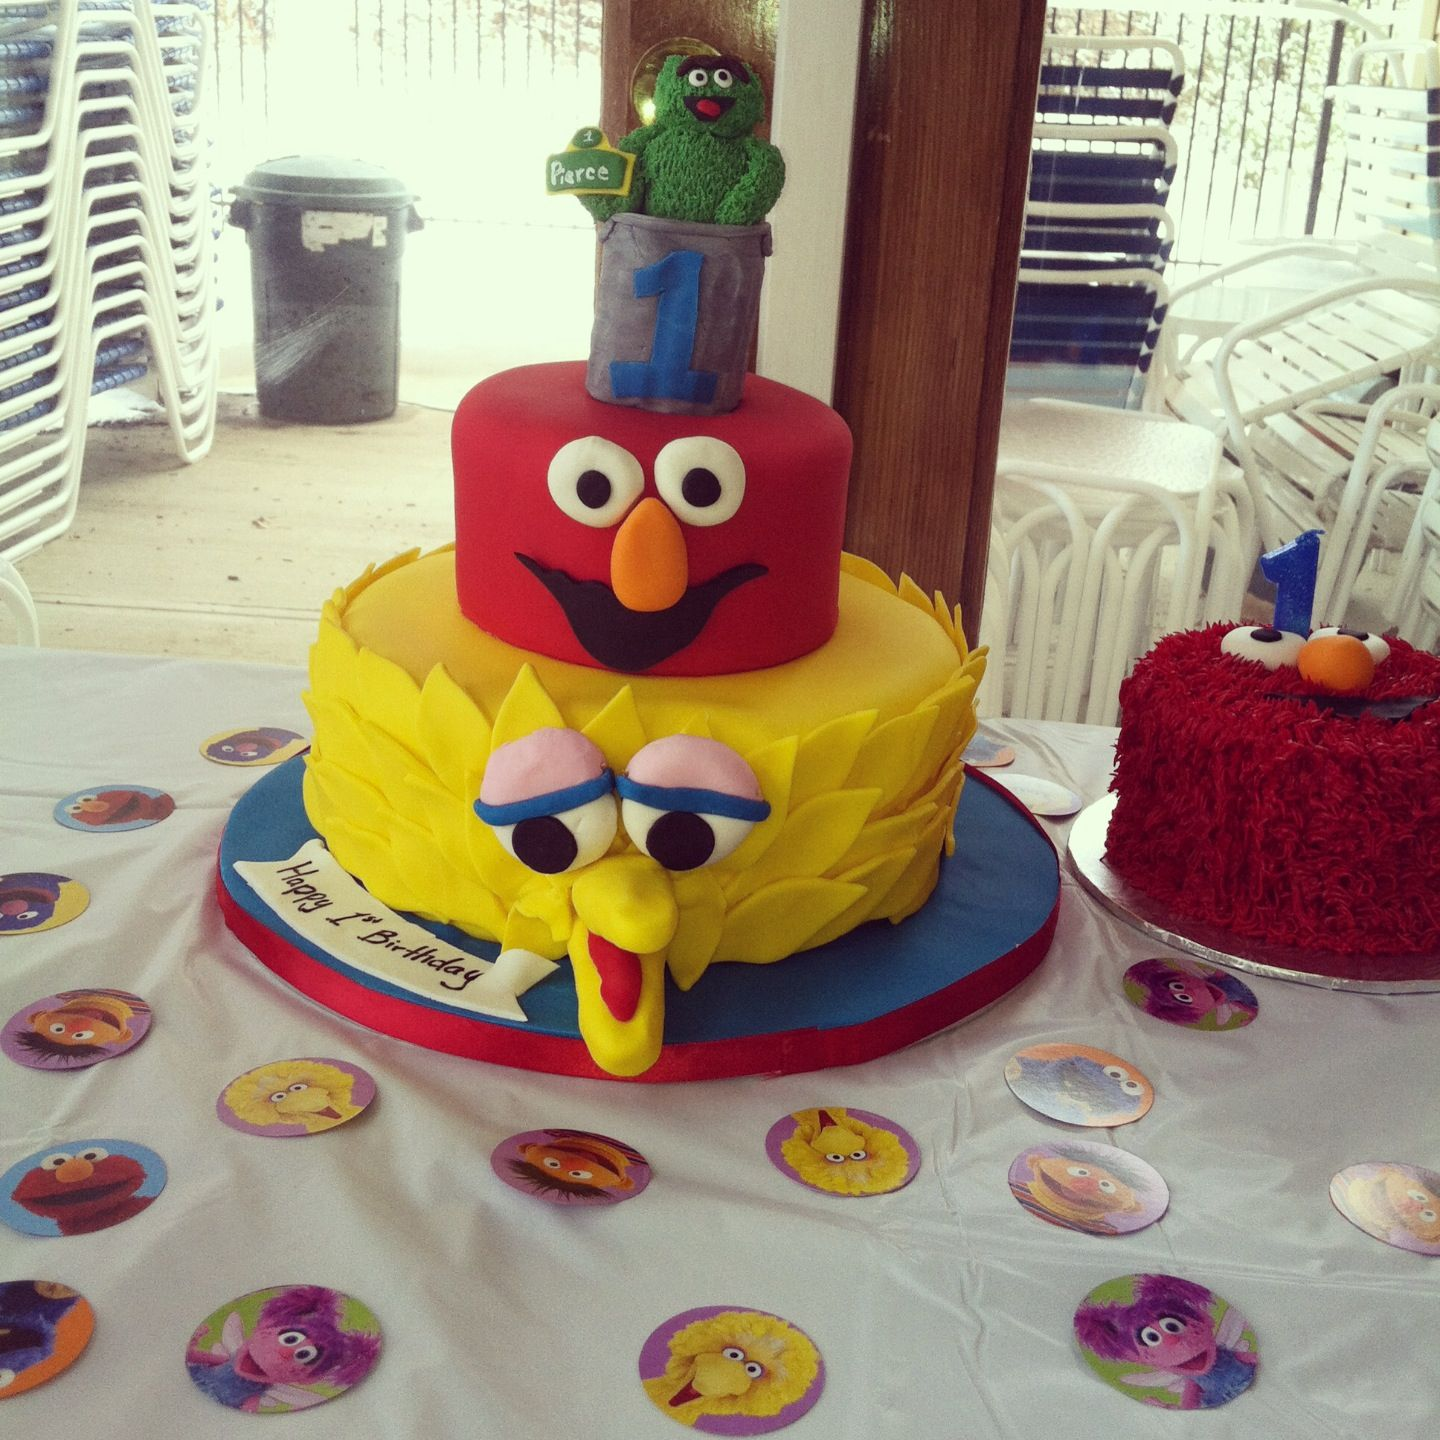 Pierce's birthday cake!